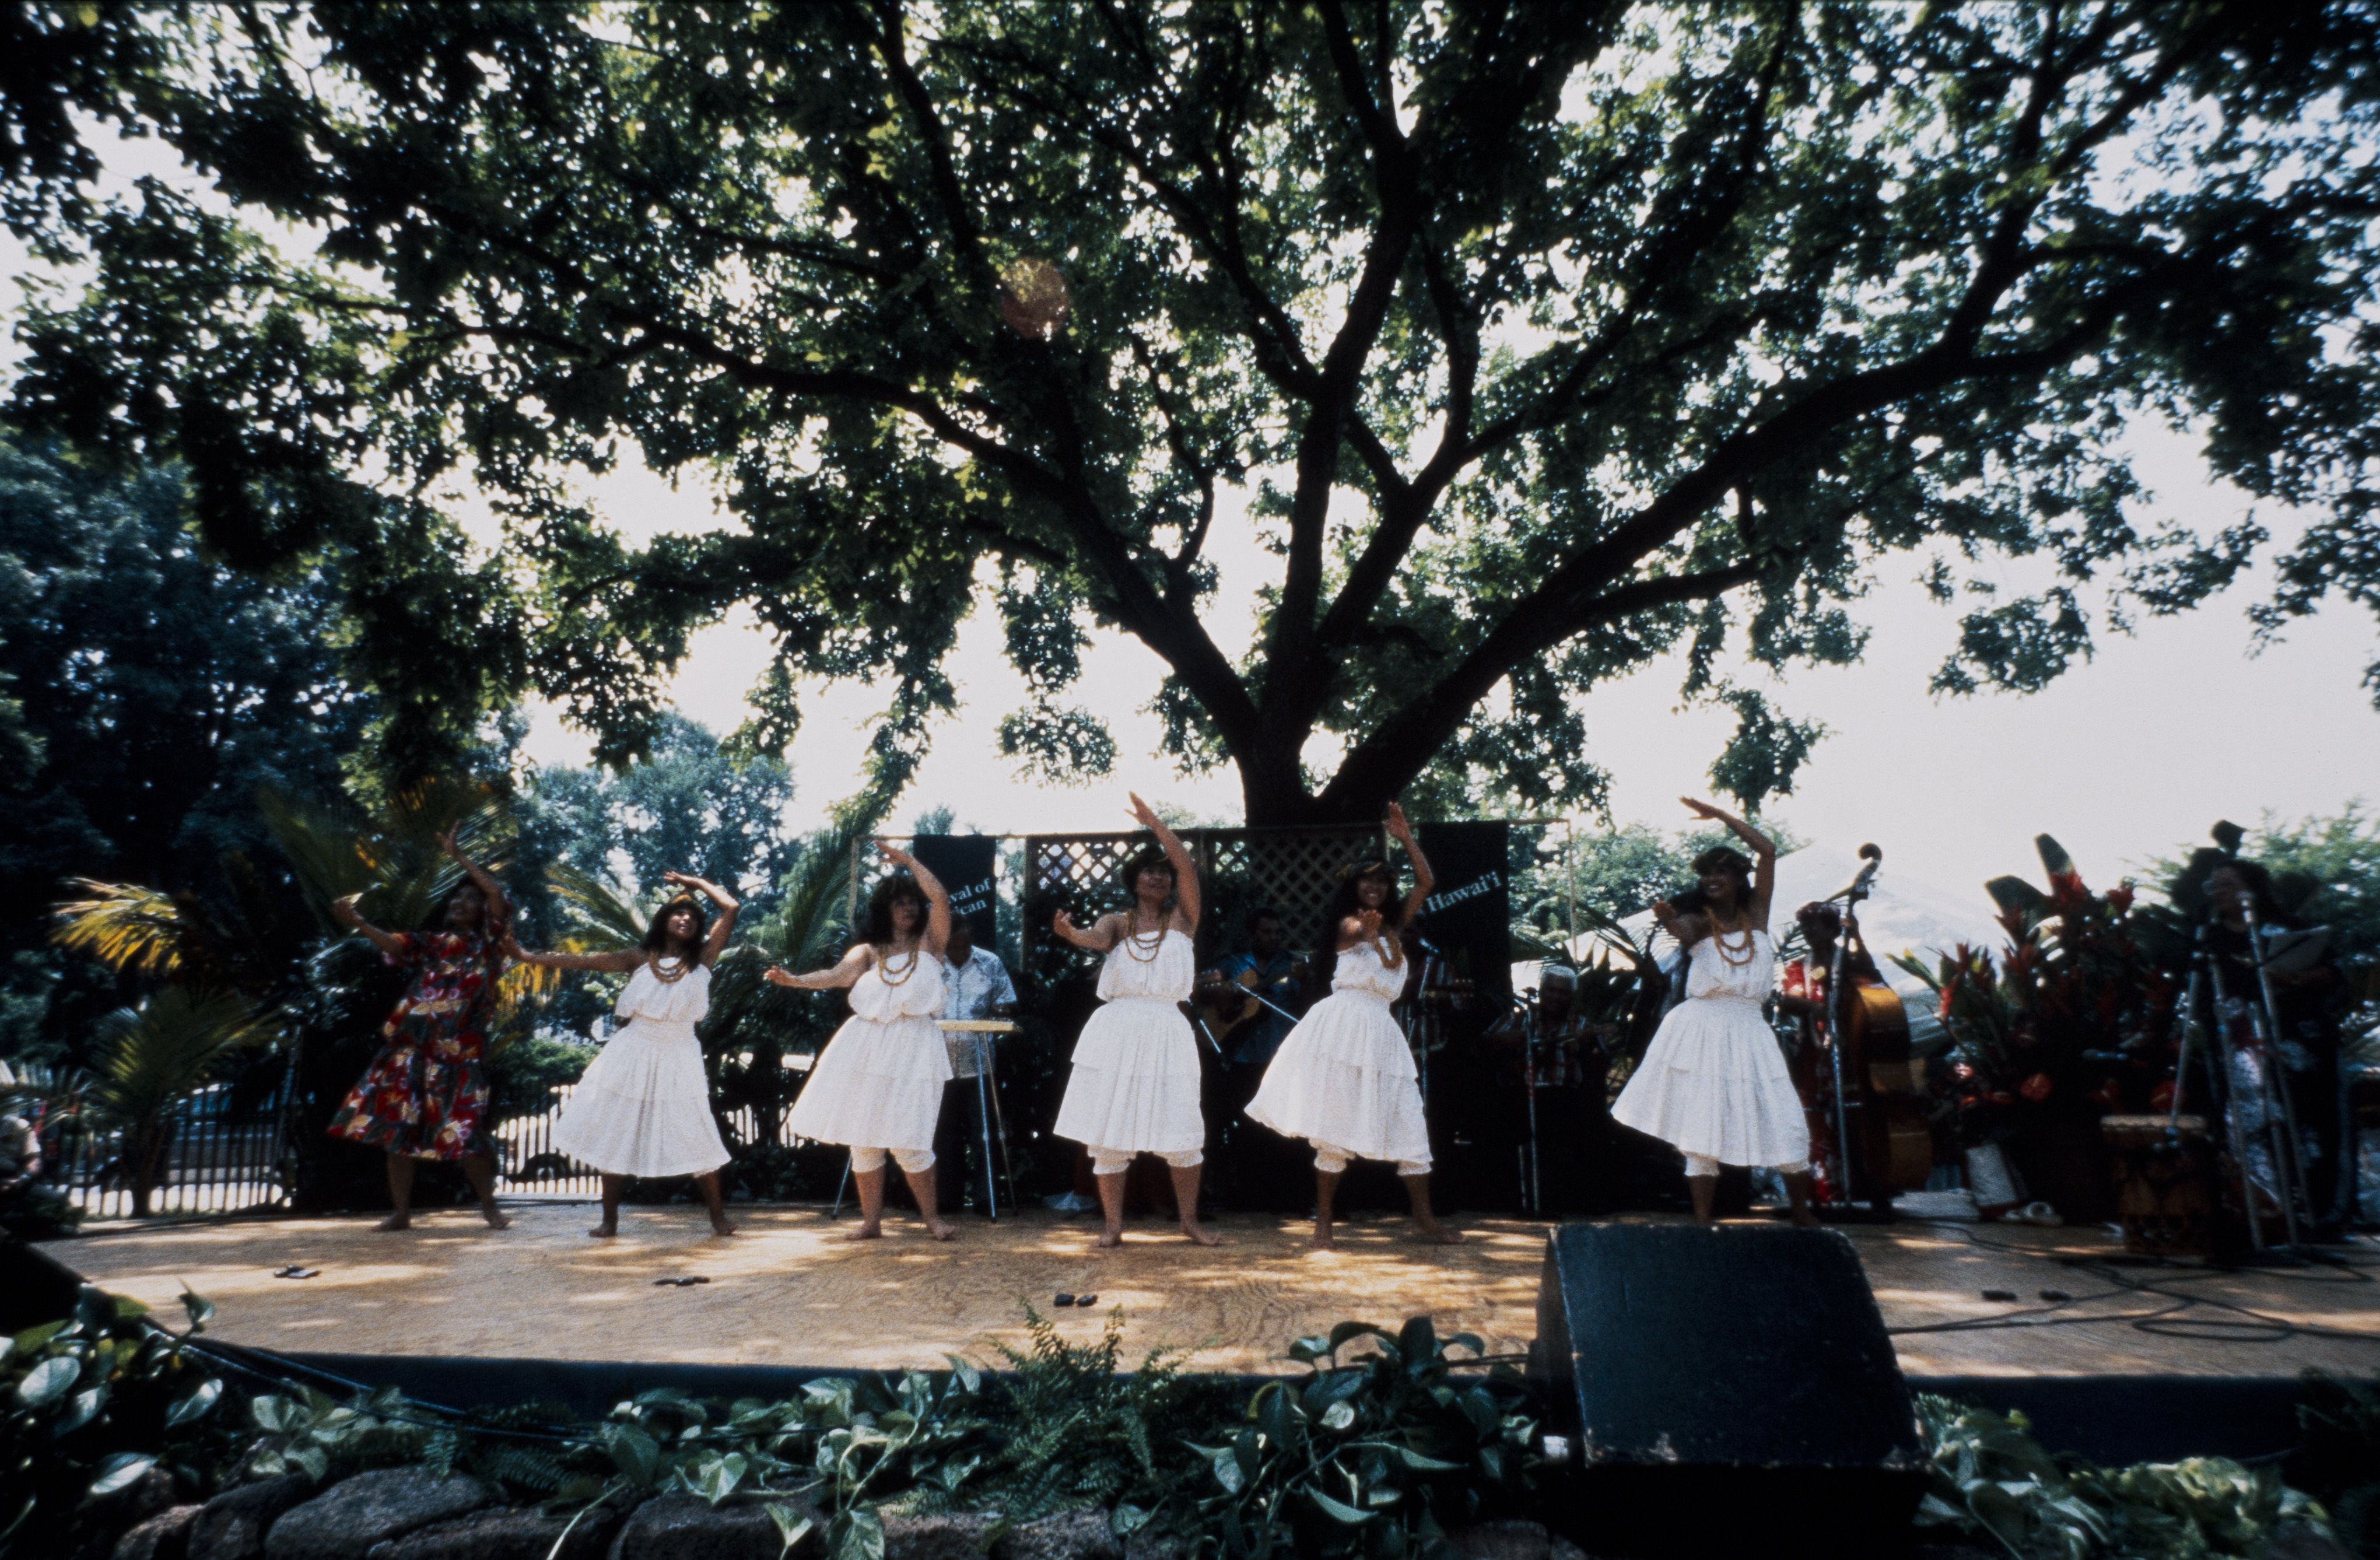 On a raised platform stage, five hula dancers in white dresses and one in a floral print dress, with